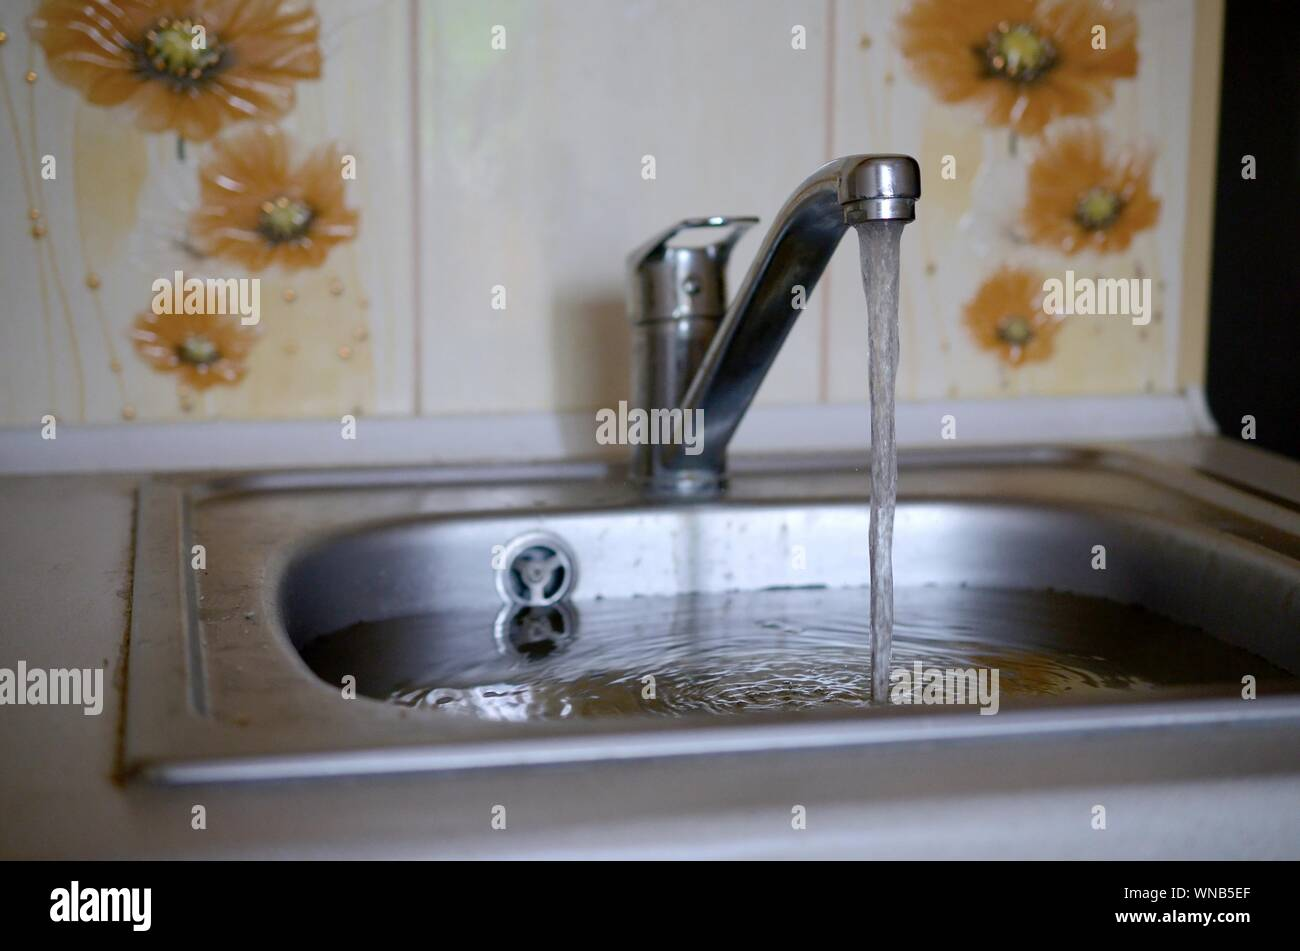 https www alamy com stainless steel sink plug hole close up full of water and particles of food overflowing kitchen sink clogged drain problems with the water supply image271309095 html